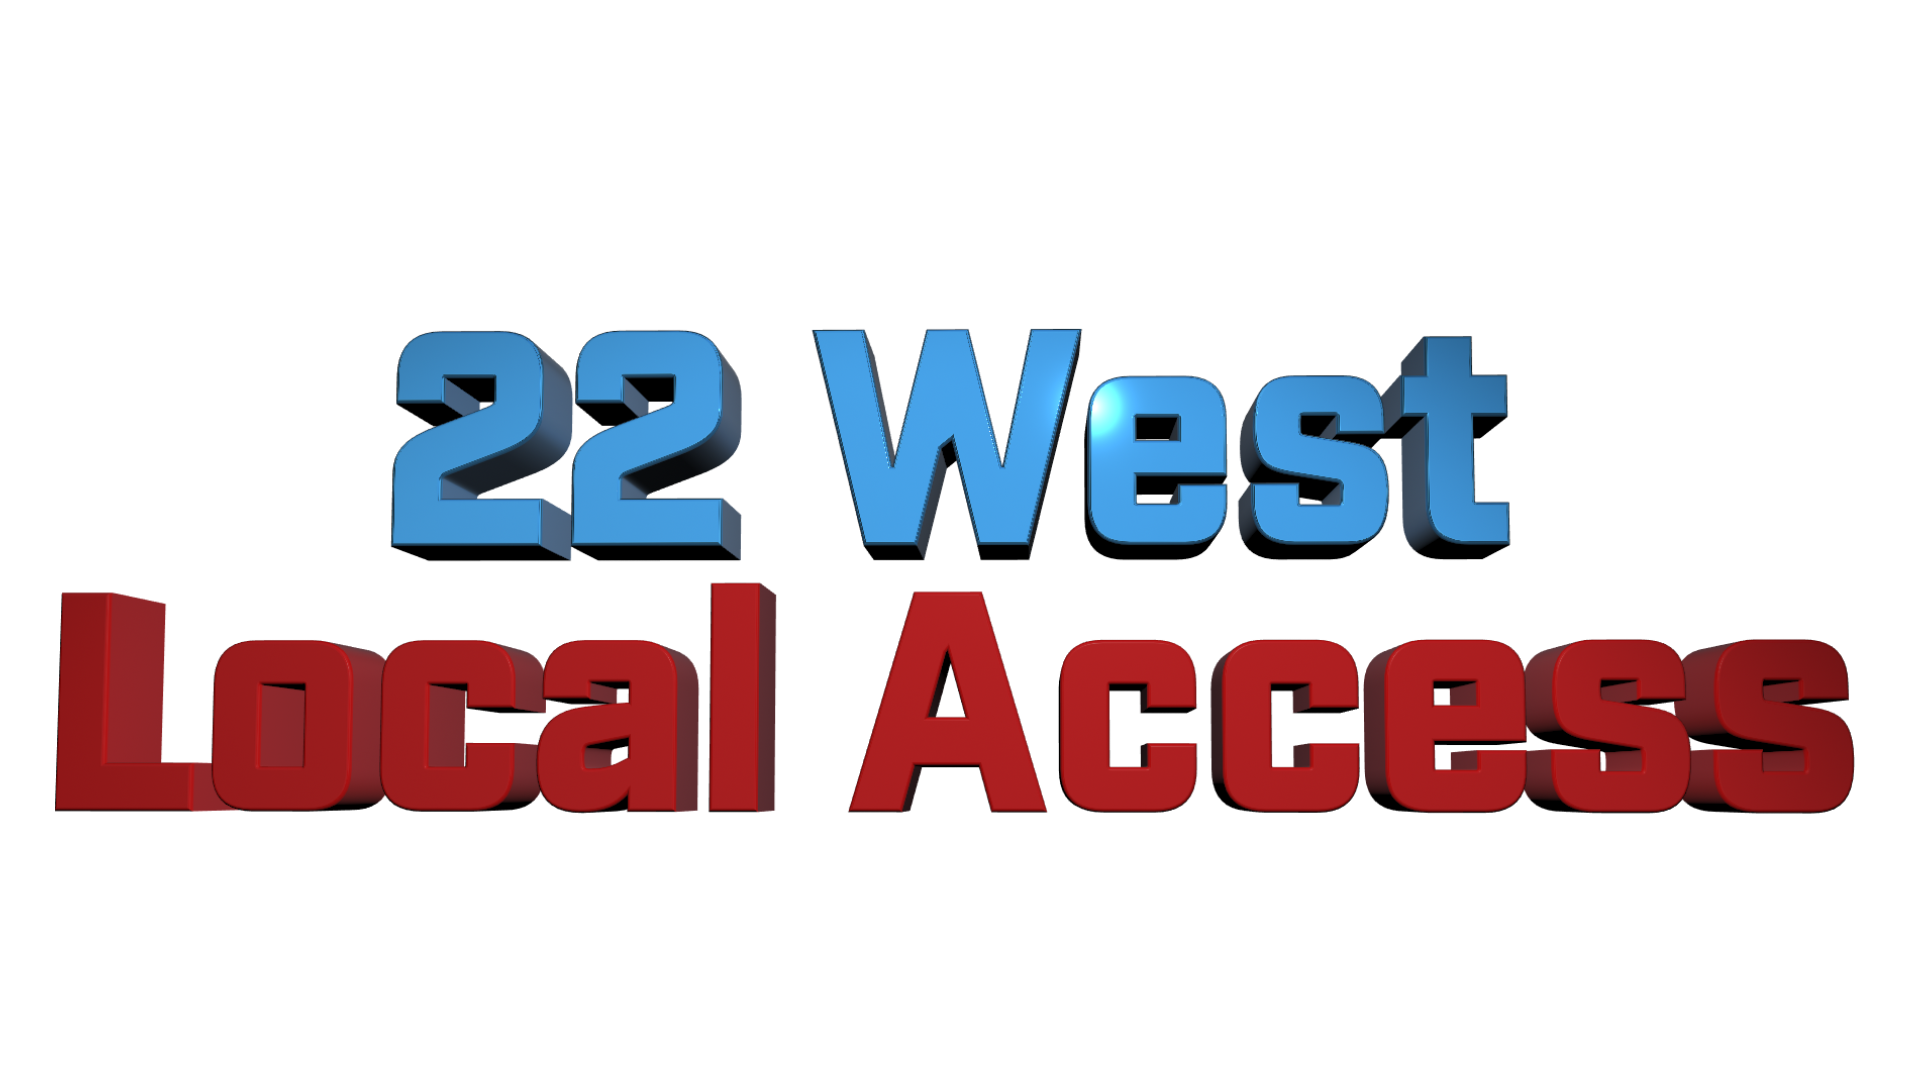 22 west local access